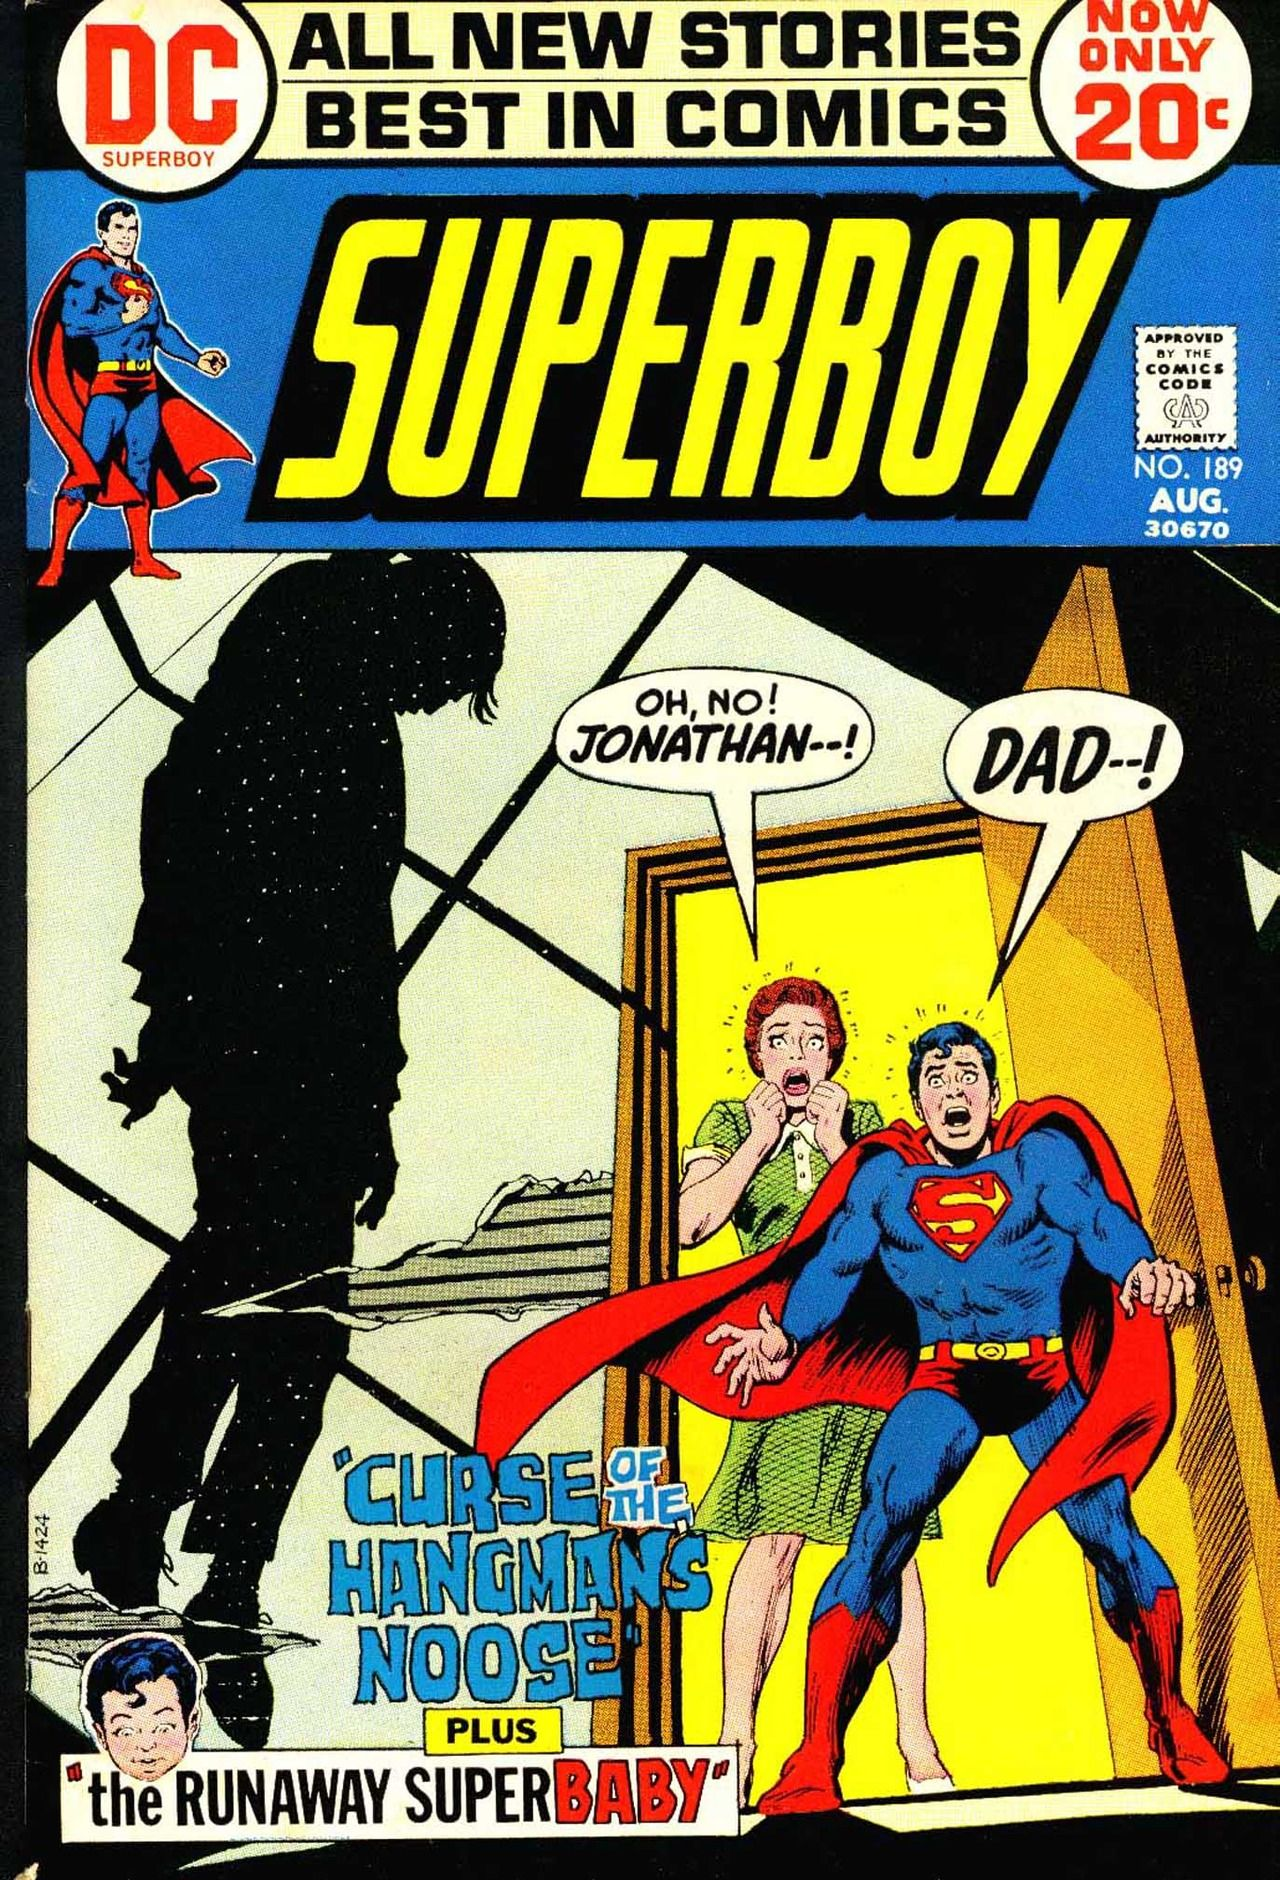 Superboy 189 August Cover By Nick Cardy Kinda